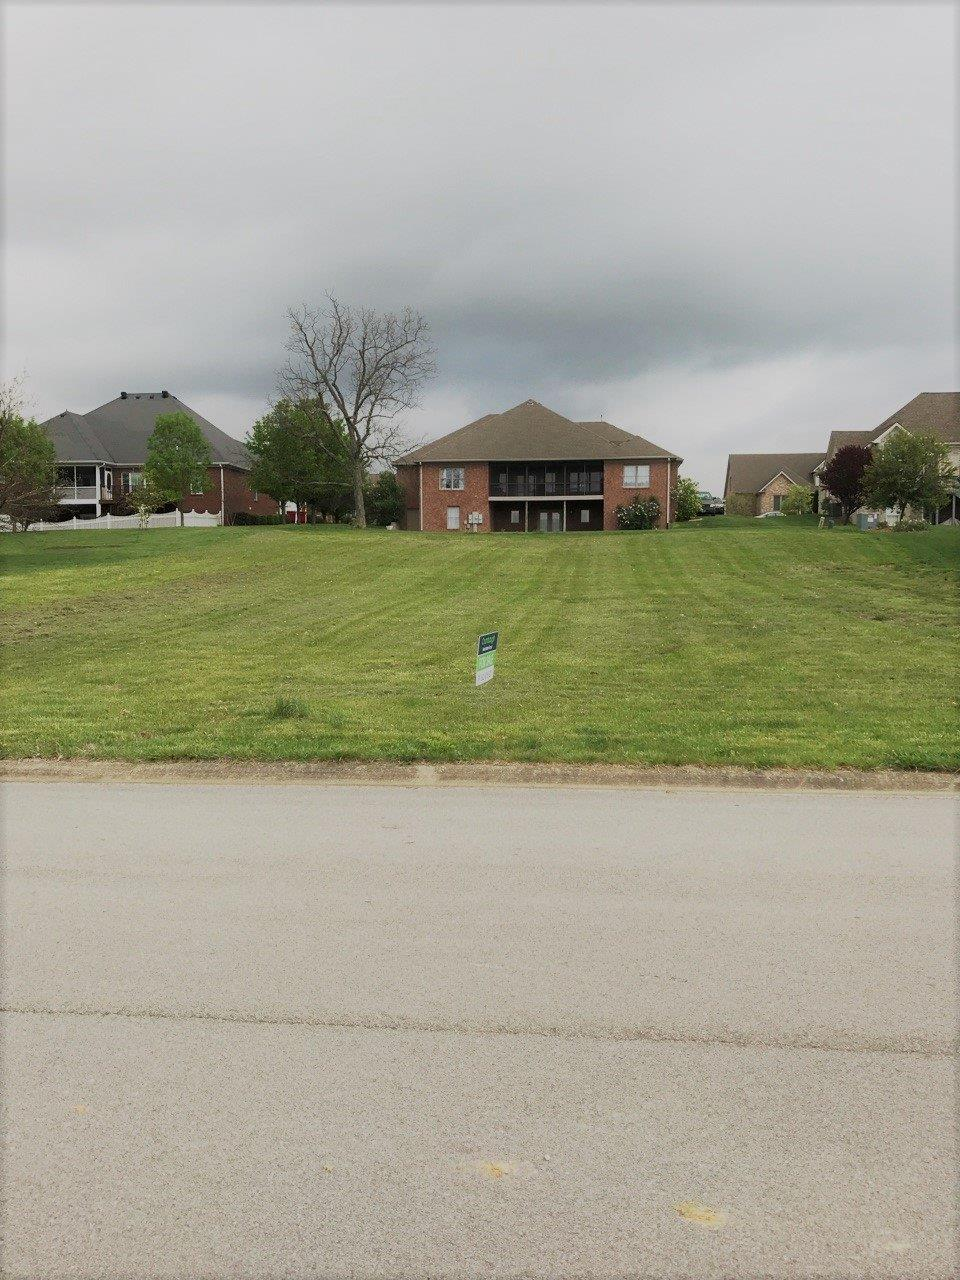 Property for sale at 117%20Wheeler%20Dr%20Frankfort,%20KY%2040601